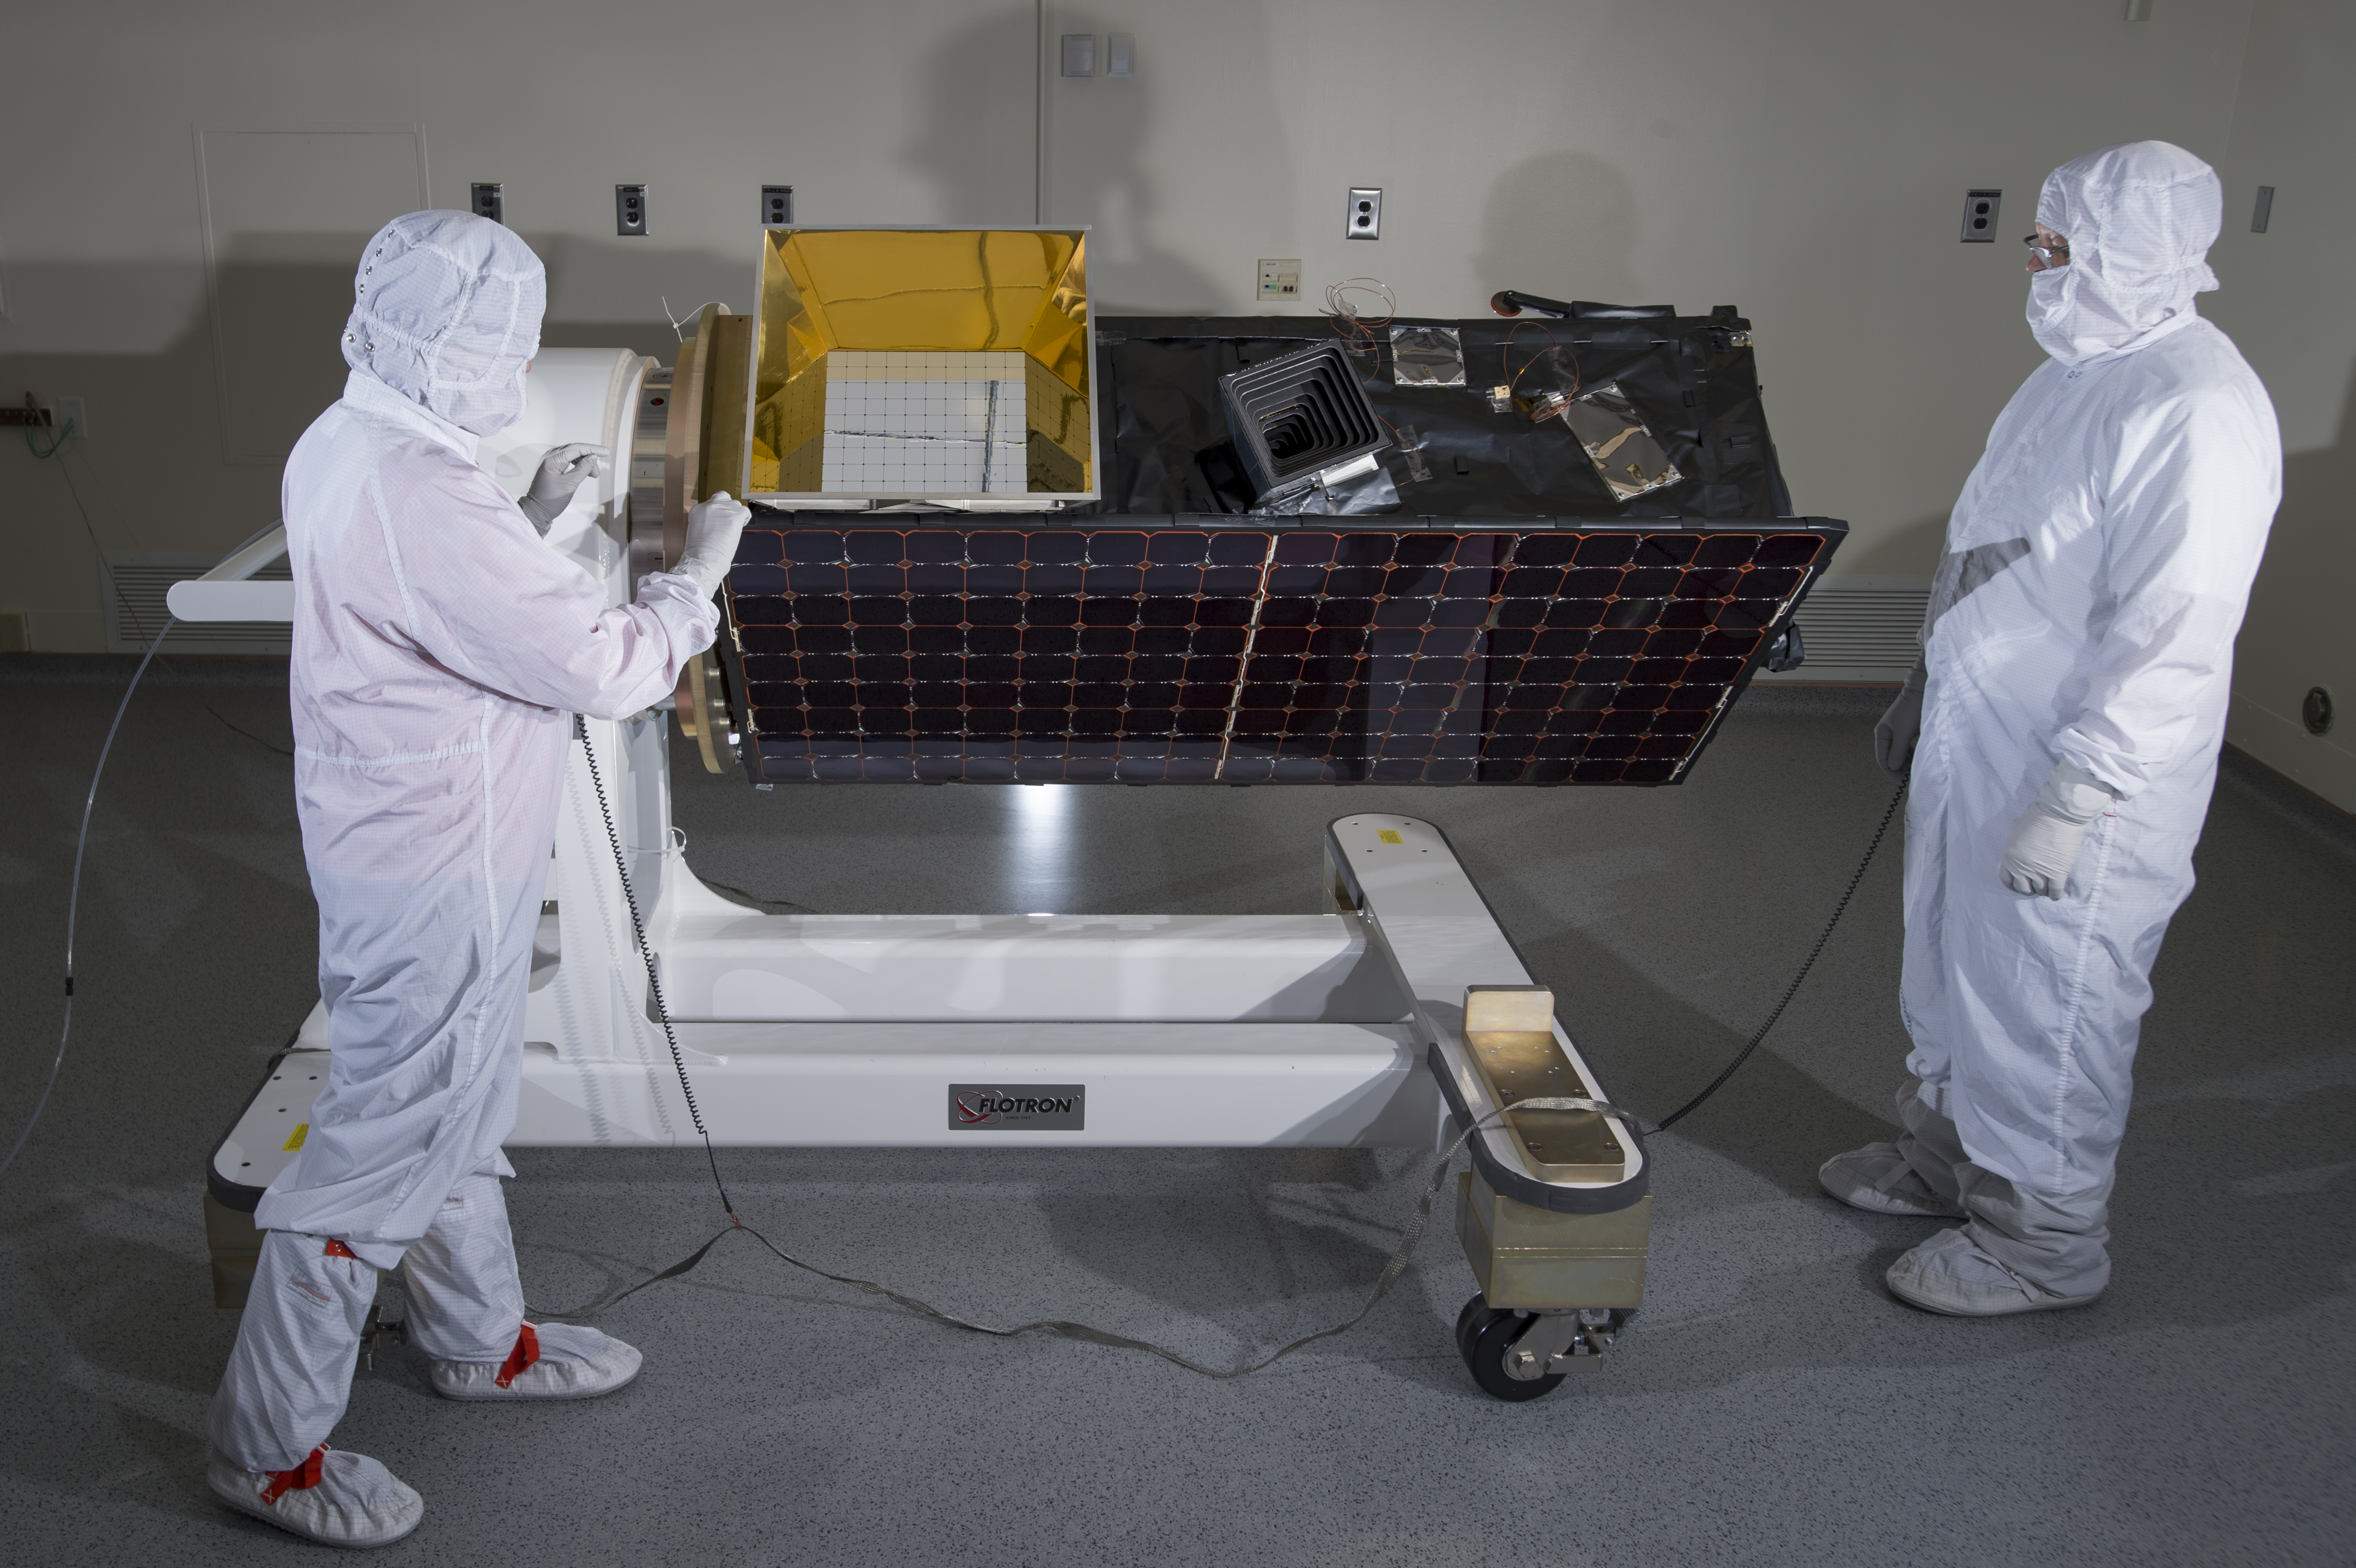 An engineer inspects SensorSat prior to thermal-vacuum testing. Photo: Glen Cooper